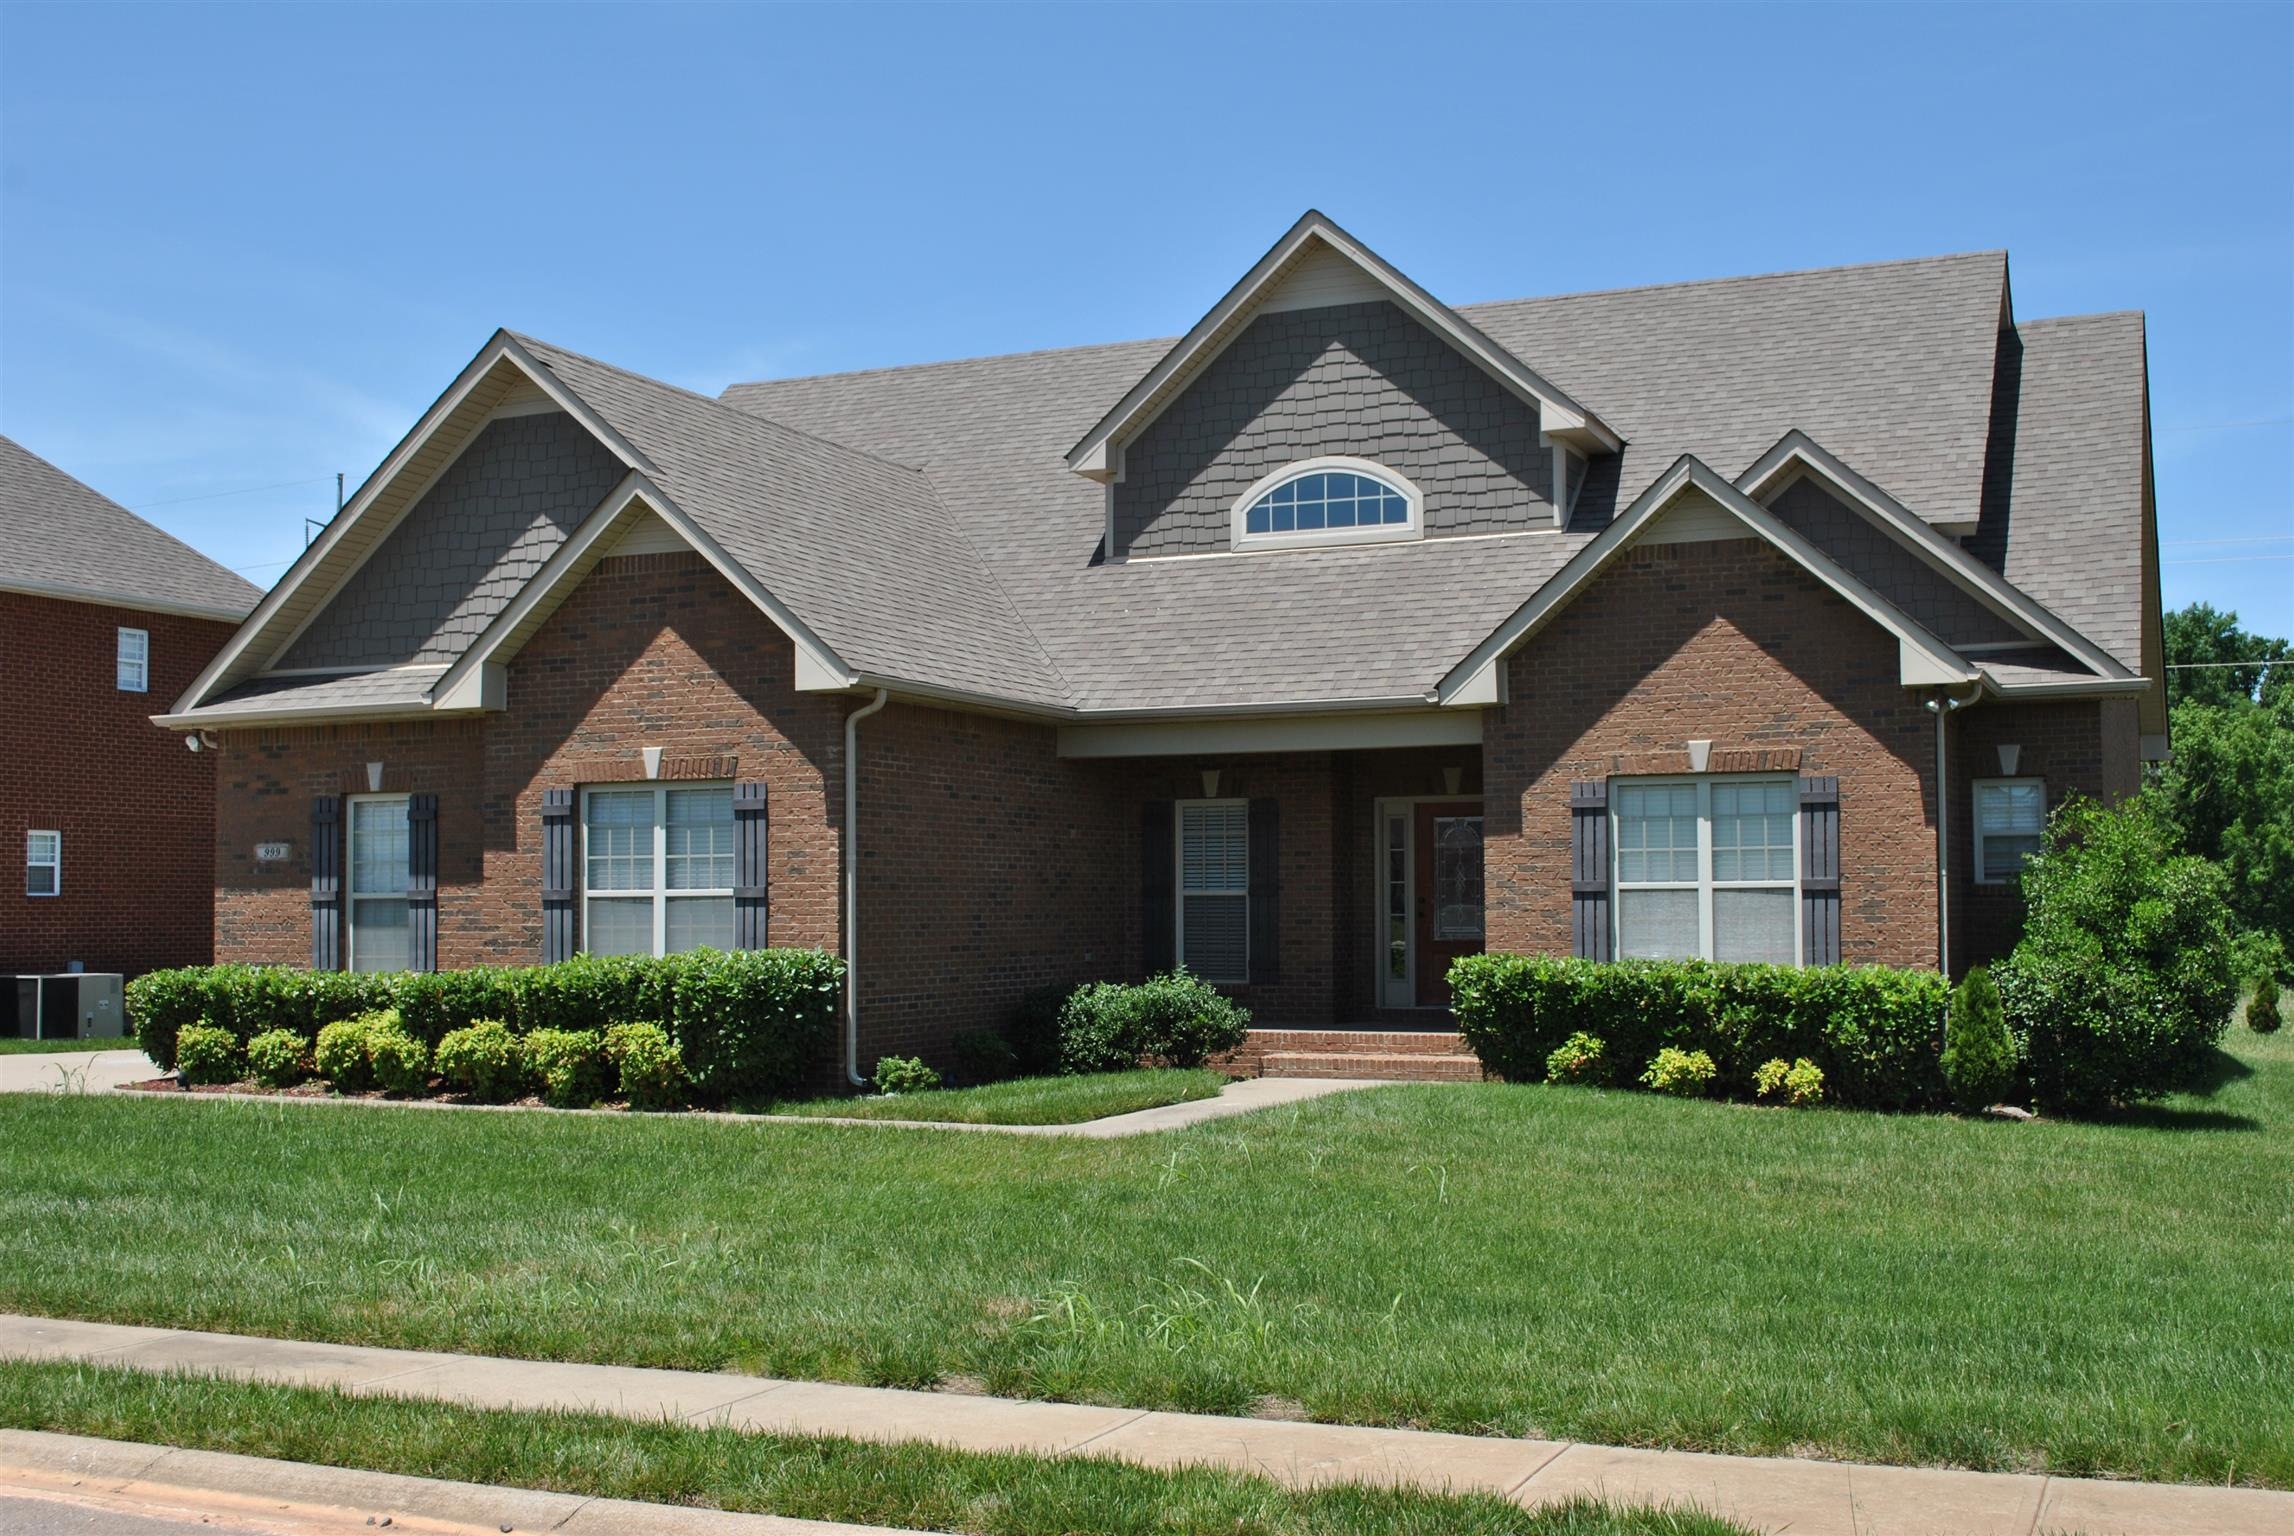 999 Terraceside Cir, Fort Campbell, Tennessee